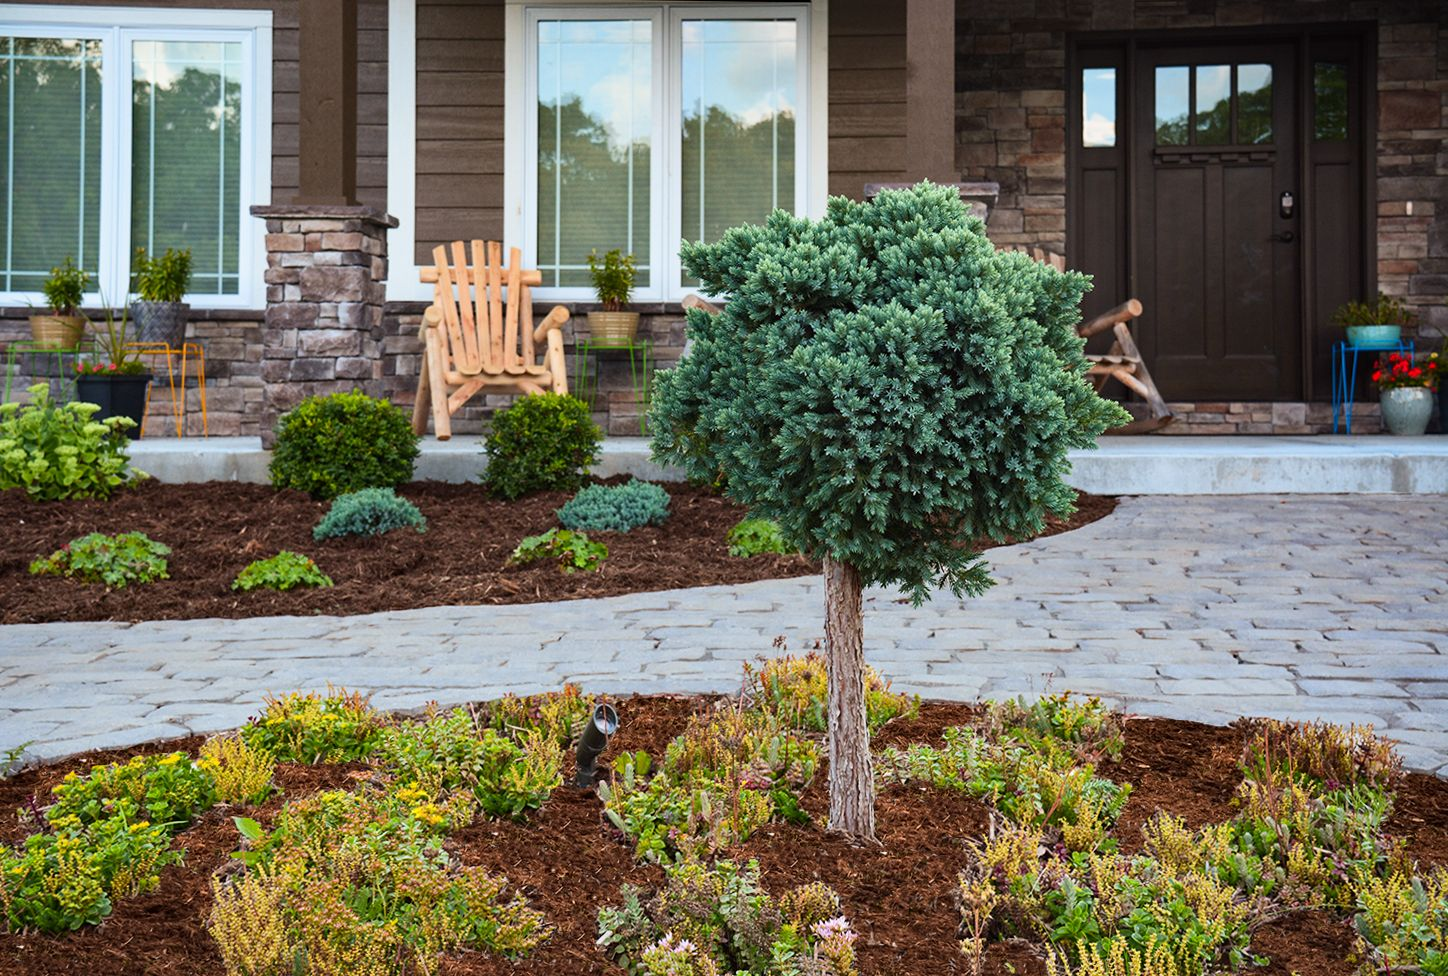 cobblestone walkways, different plant beds makes for a smooth and easy walkways for the homeowners and guests. All landscaping done by McKay nursery.